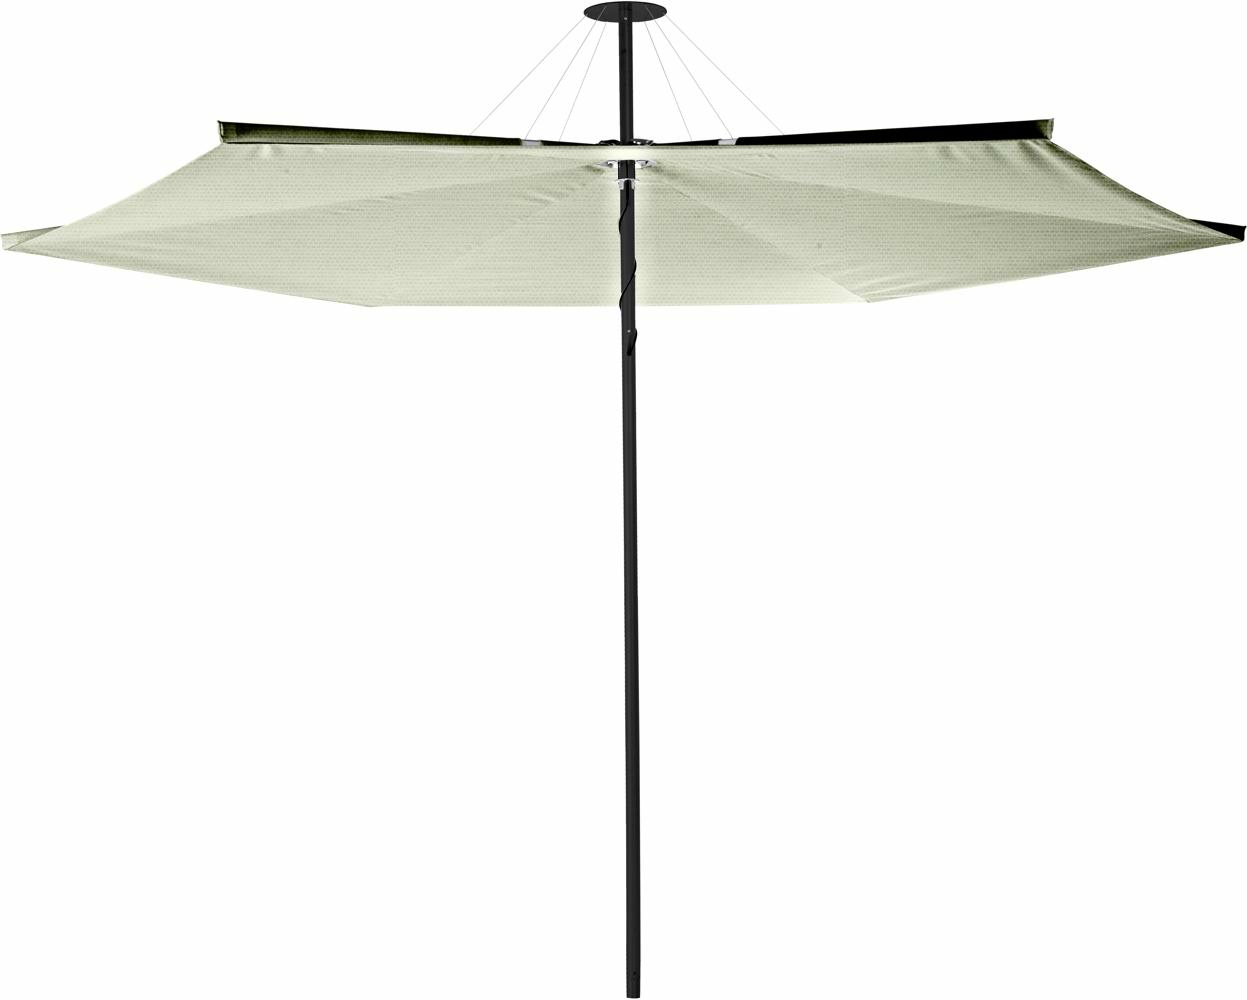 Infina center post umbrella, 3 m round, with frame in Dusk and Solidum Mint canopy.